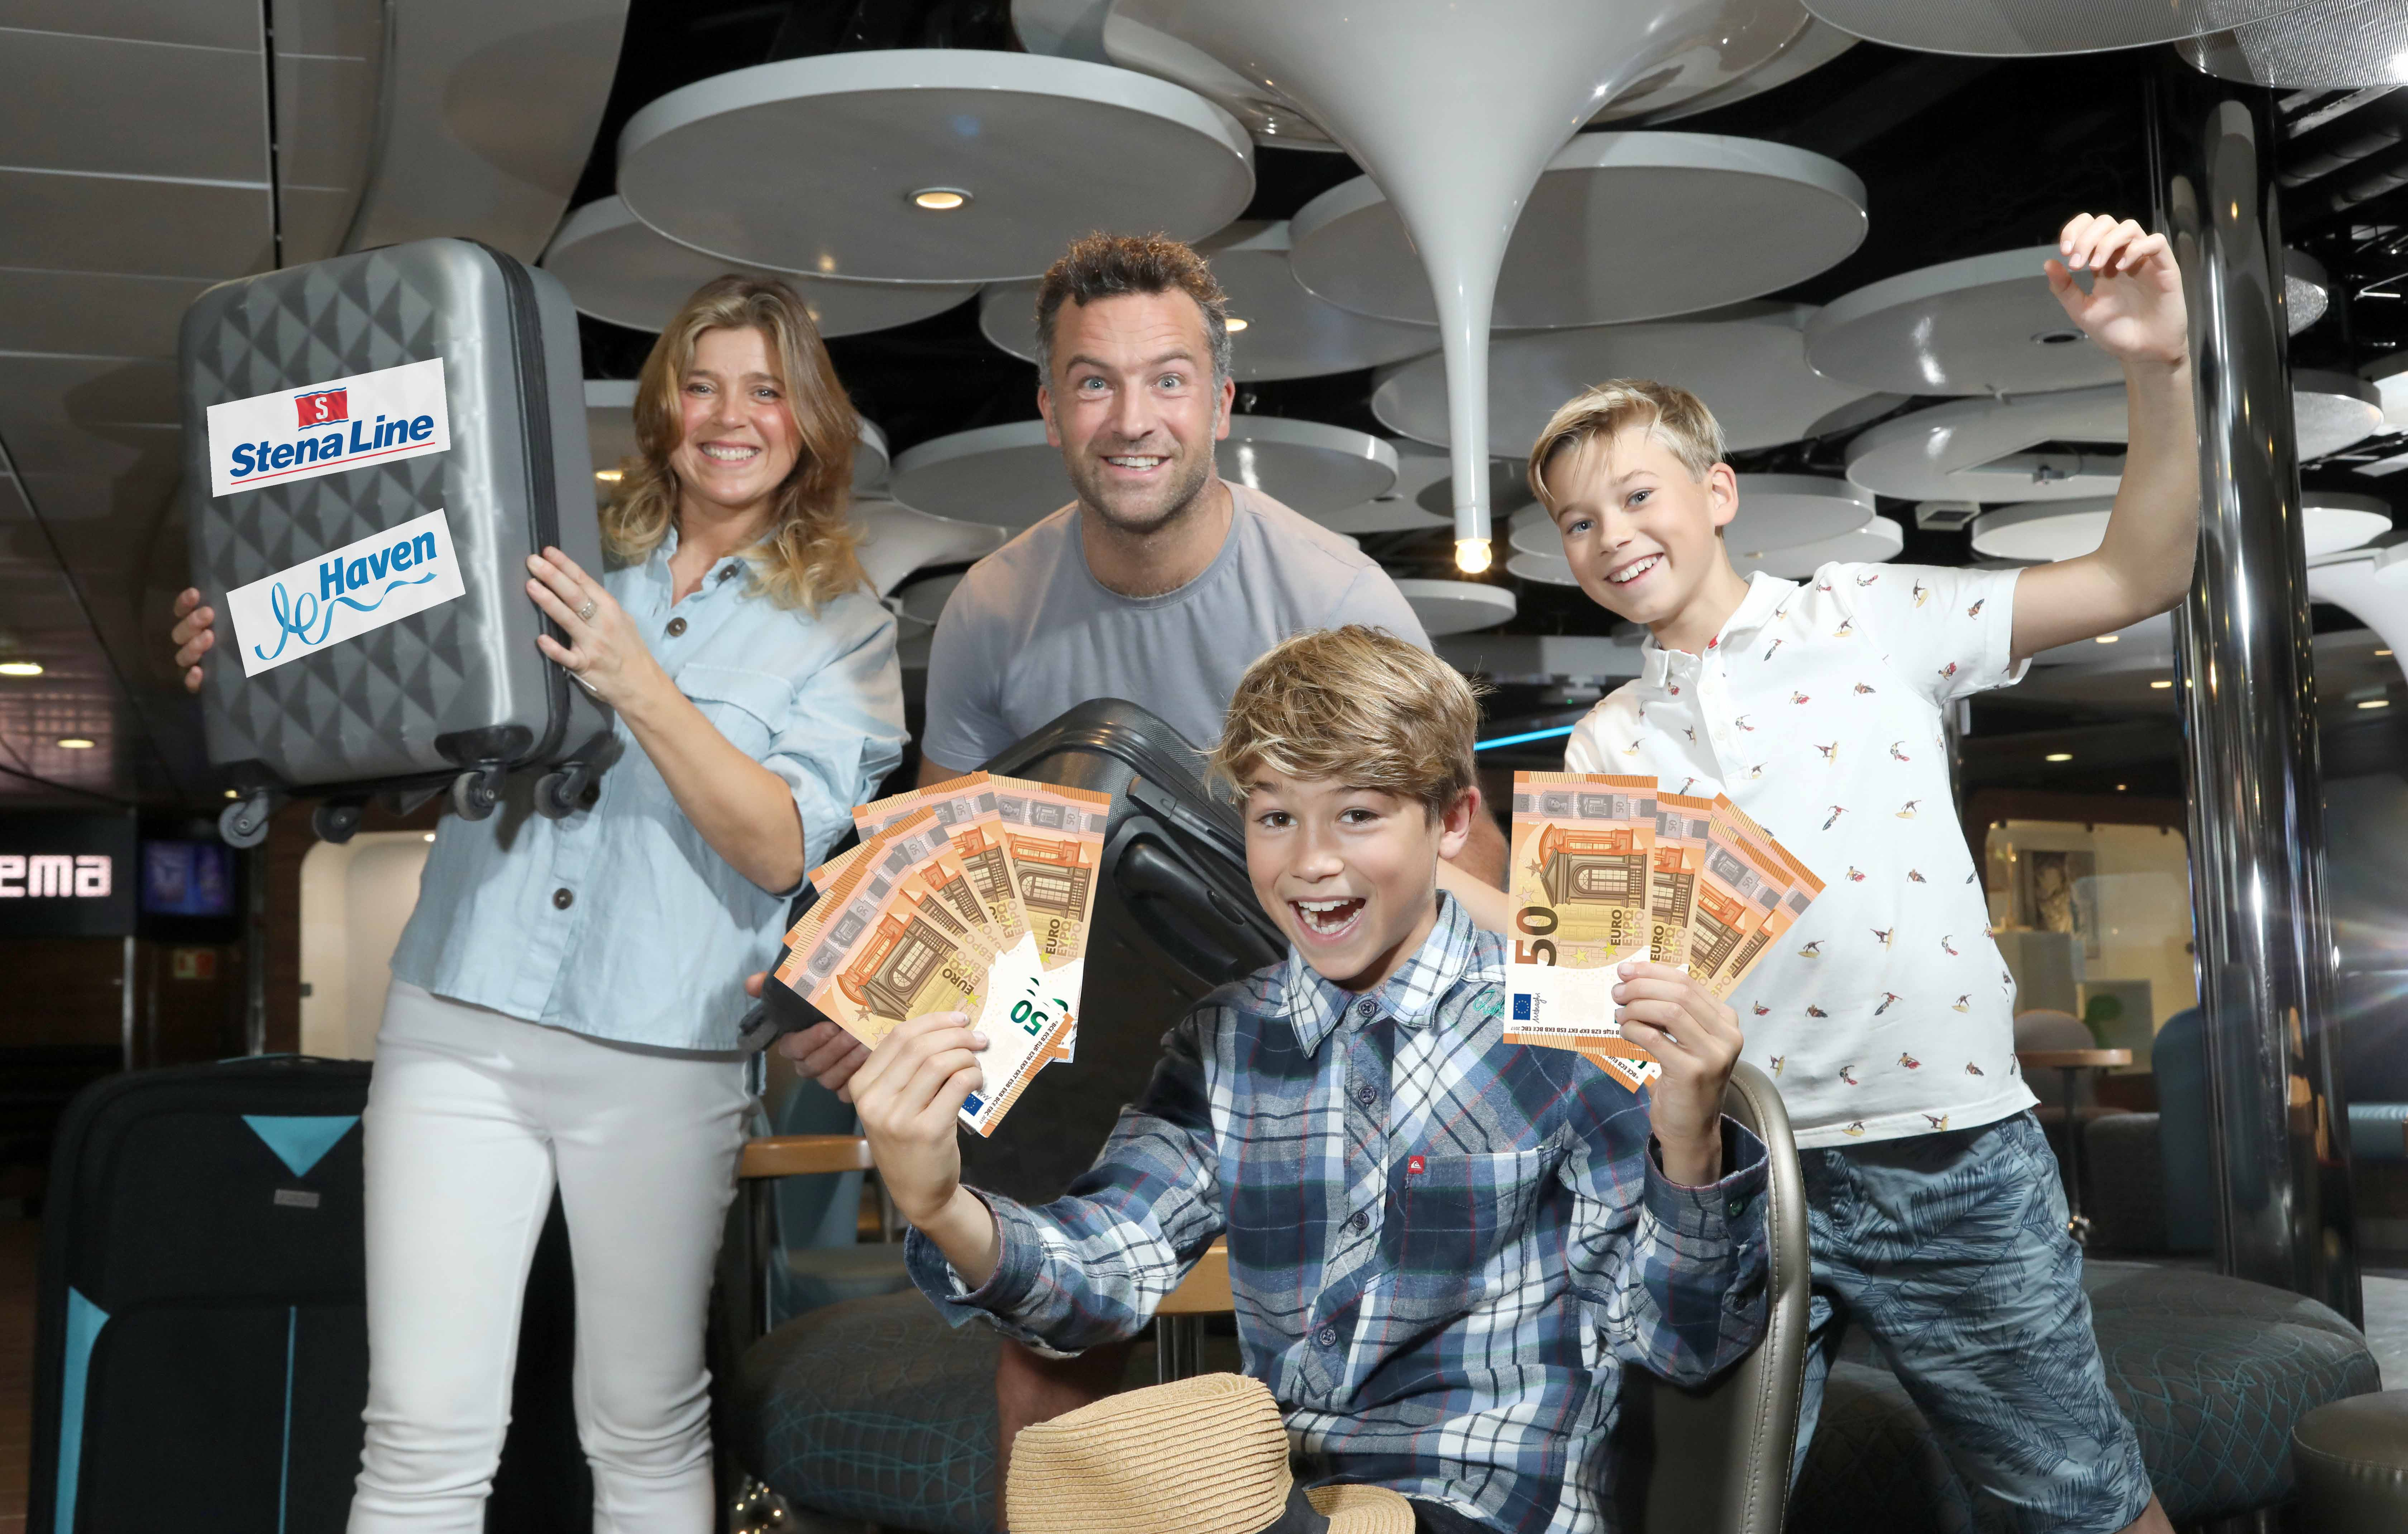 The Stockdale family are pictured celebrating Stena Line's latest early booking offer, giving families the chance to save up to €600* on a seven-night summer self-catering Haven holiday if booked by February 29. With a low deposit from only €50 to secure the getaway with Stena Line, holidaymakers can enjoy a stress-free travel experience and look forward to no baggage restrictions, action packed facilities and entertainment every night for no extra cost, from March to October 2020. For further information or to book go to www.stenaline.co.uk/haven, call 08445 768 768 or see your travel agent. *Terms and conditions apply. Subject to availability.